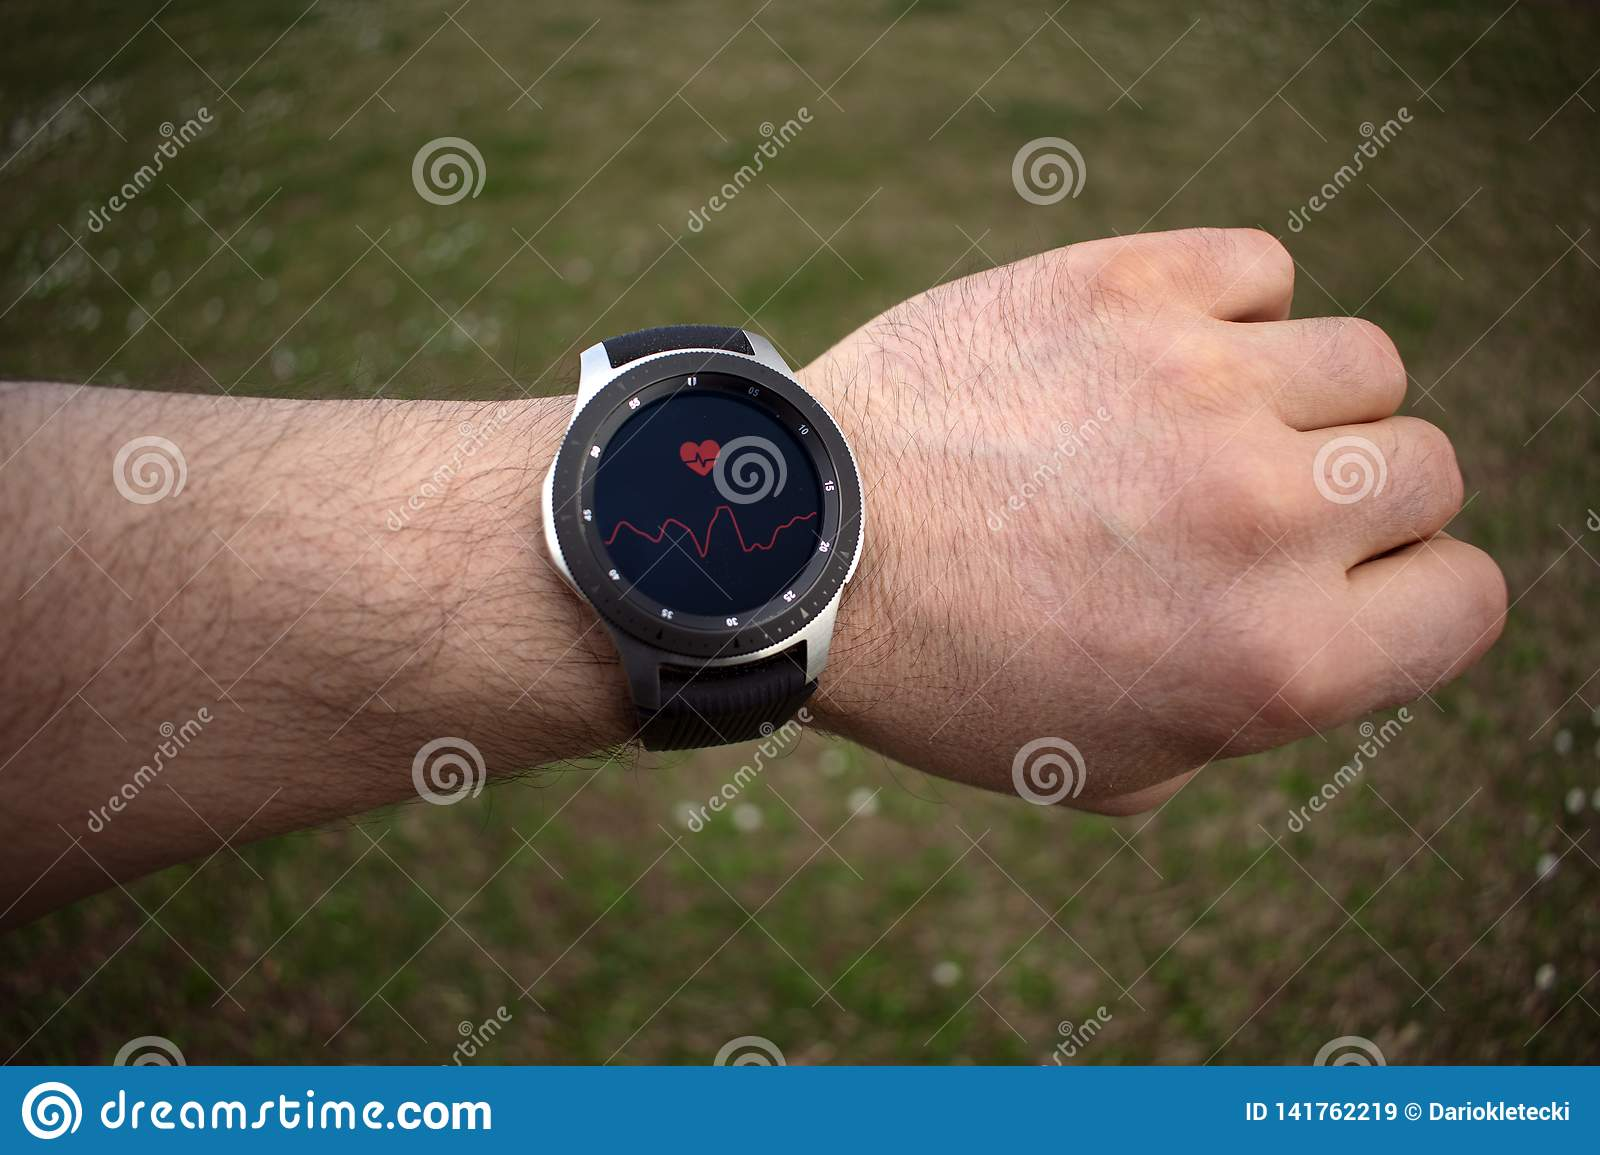 SSmartwatch on a man`s hand measuring heart rate